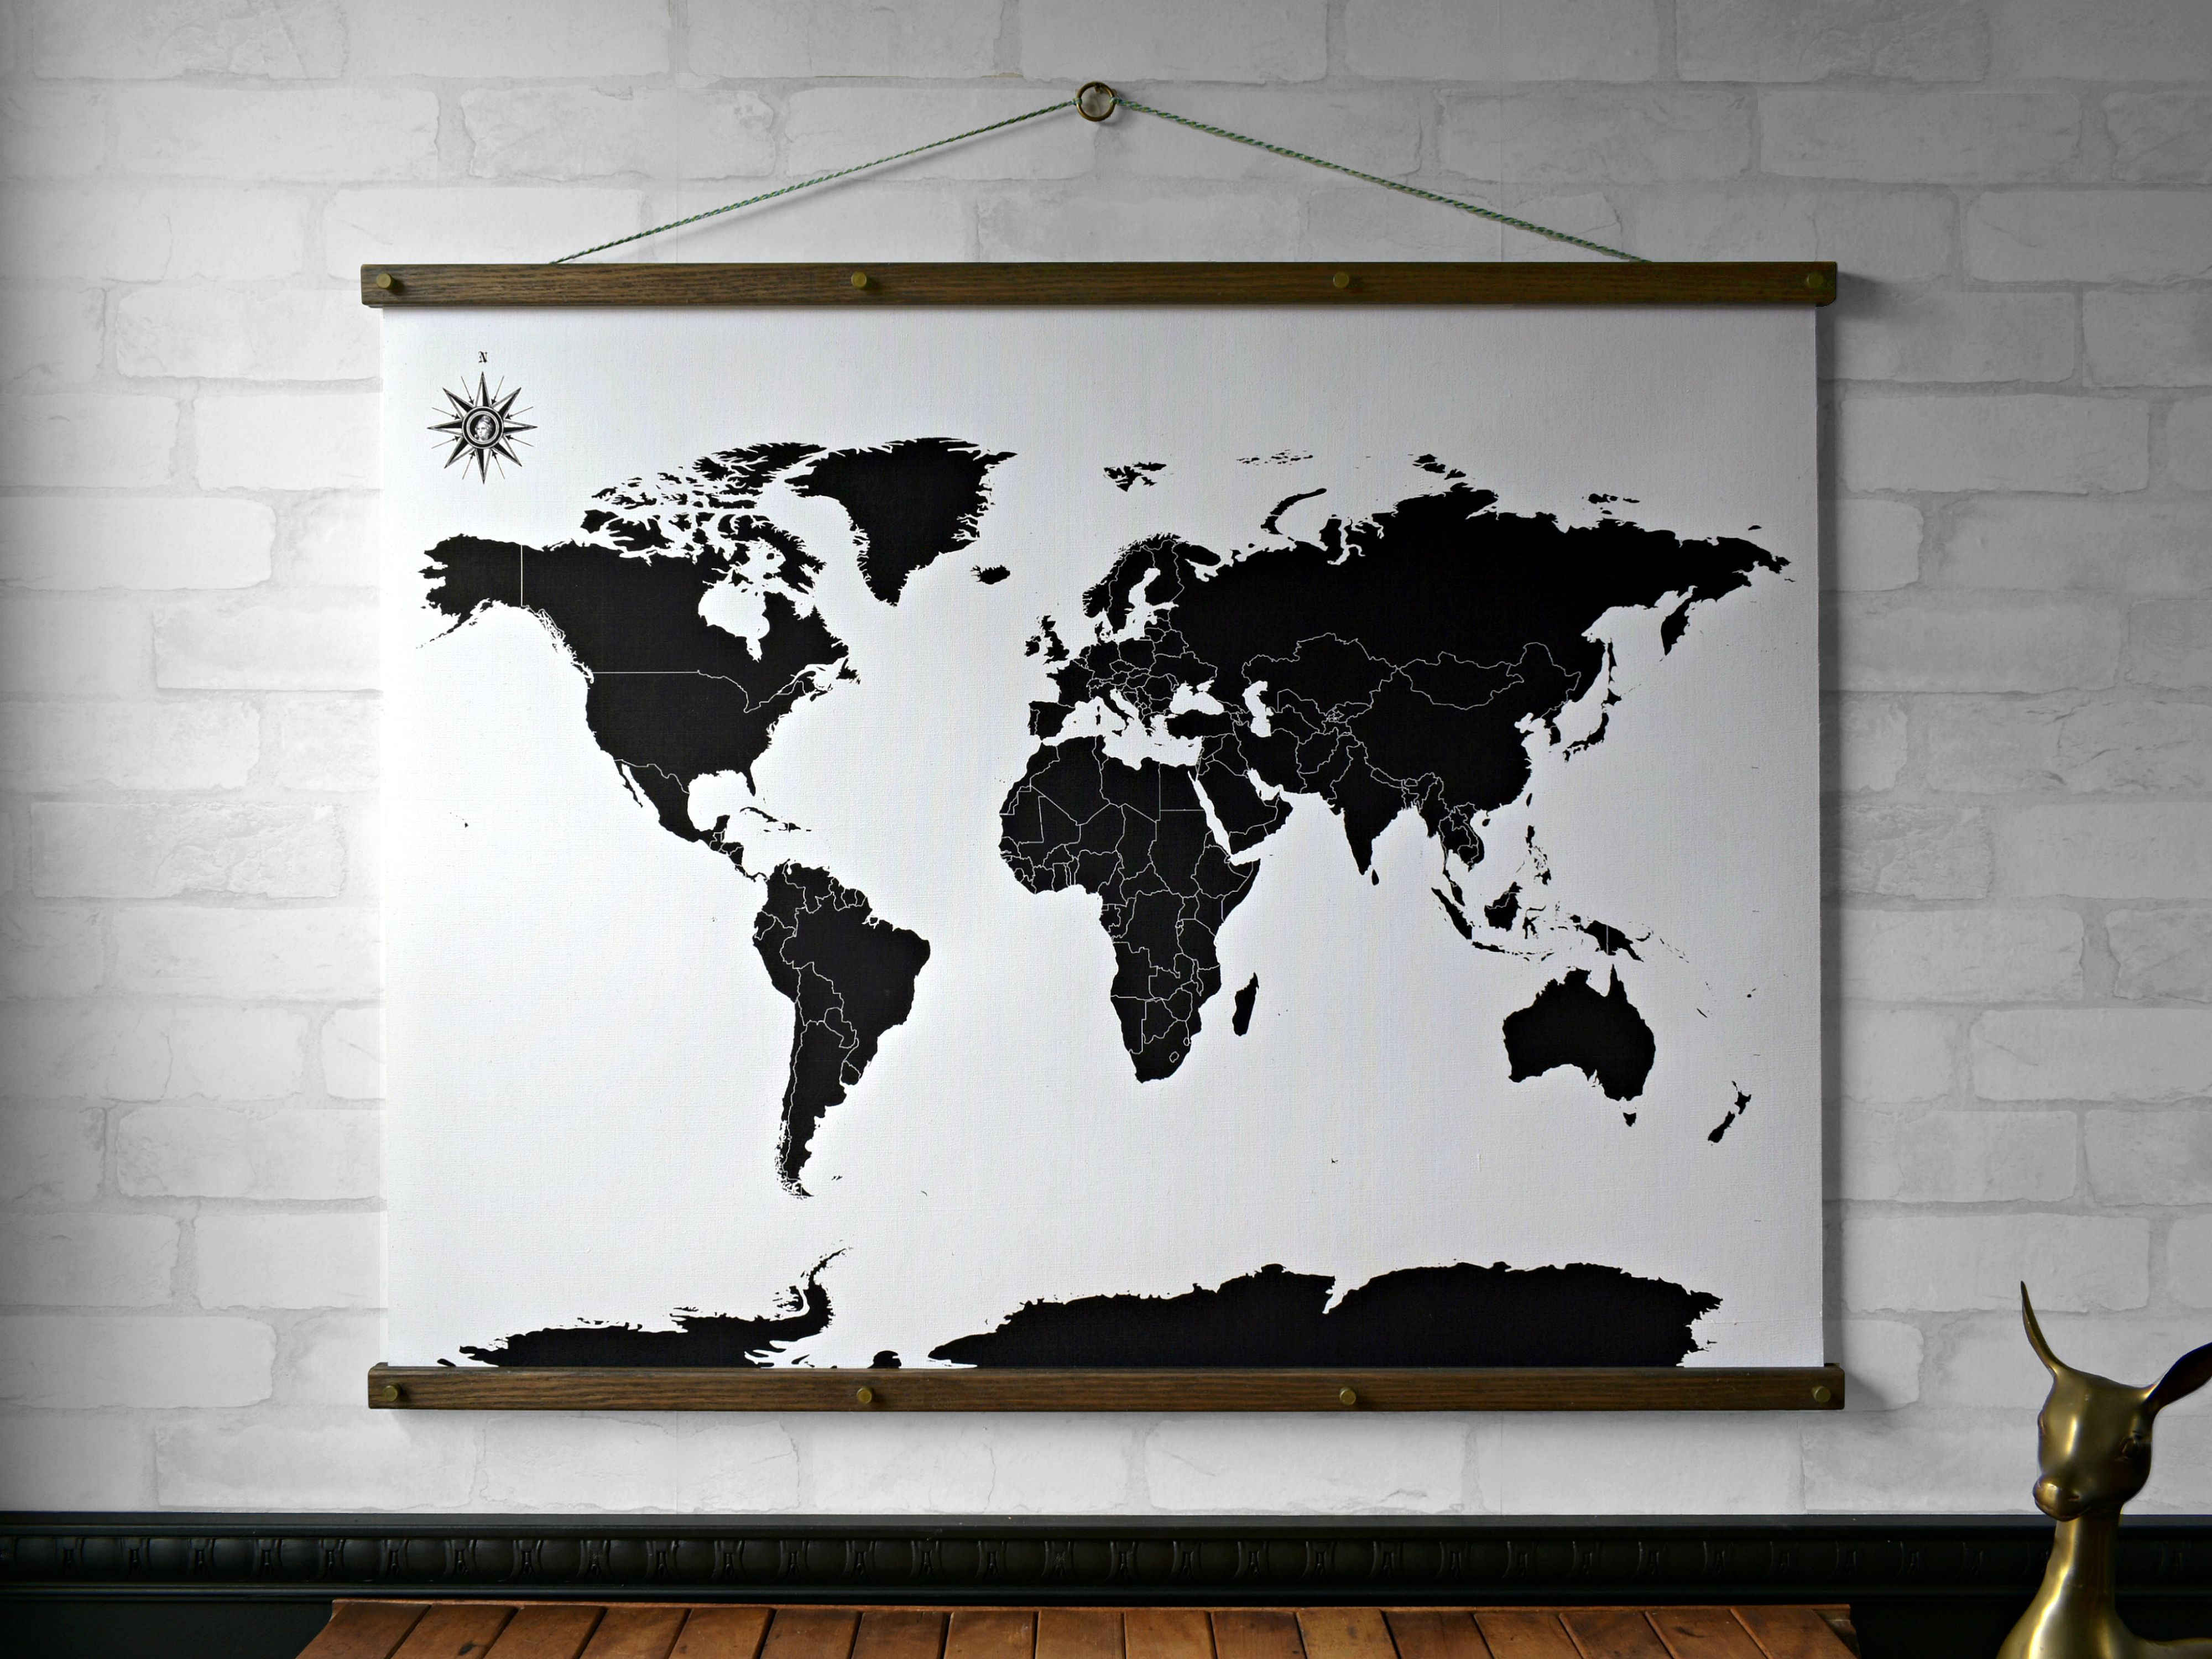 World Map Black and White Wall Hanging, Canvas Print with ... on map mirror, map skirt, map accessories, map of downtown denver rtd, map bag, map scrapbook, map chair, map hwy 224 clackamas 32nd, map plastic,